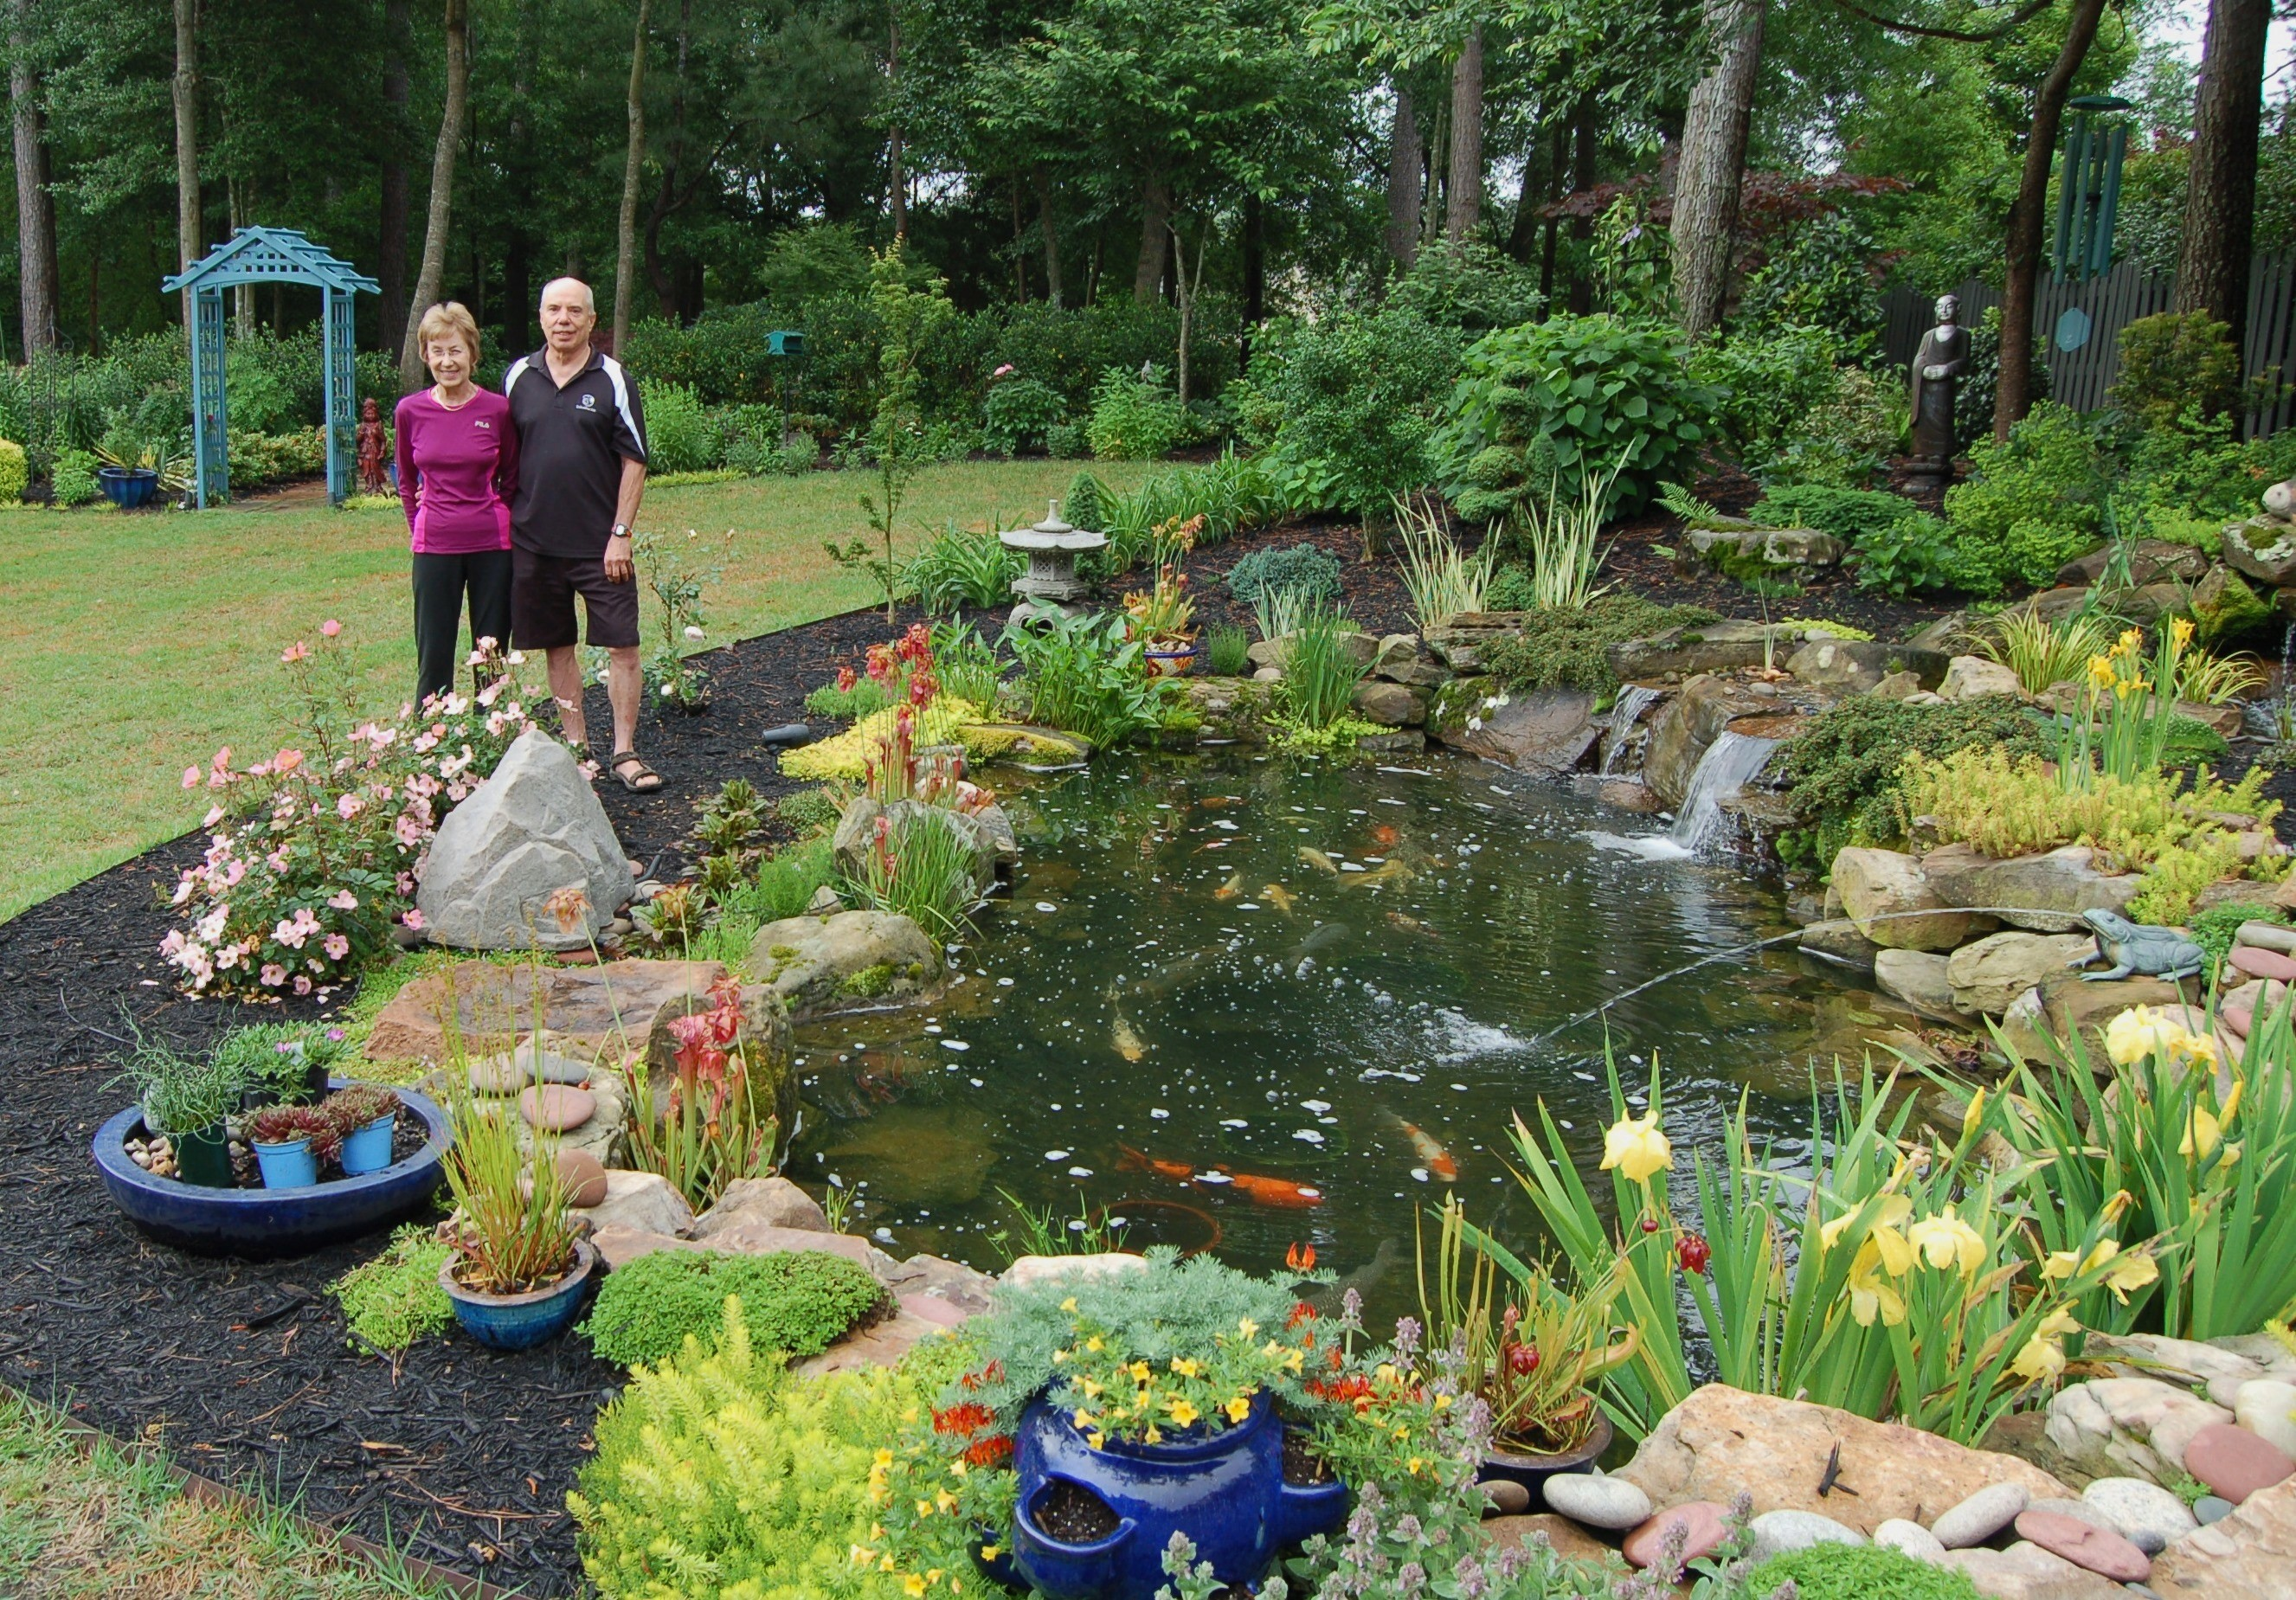 Sc koi water garden society opens 2013 tour hortitopia for Garden with a pond